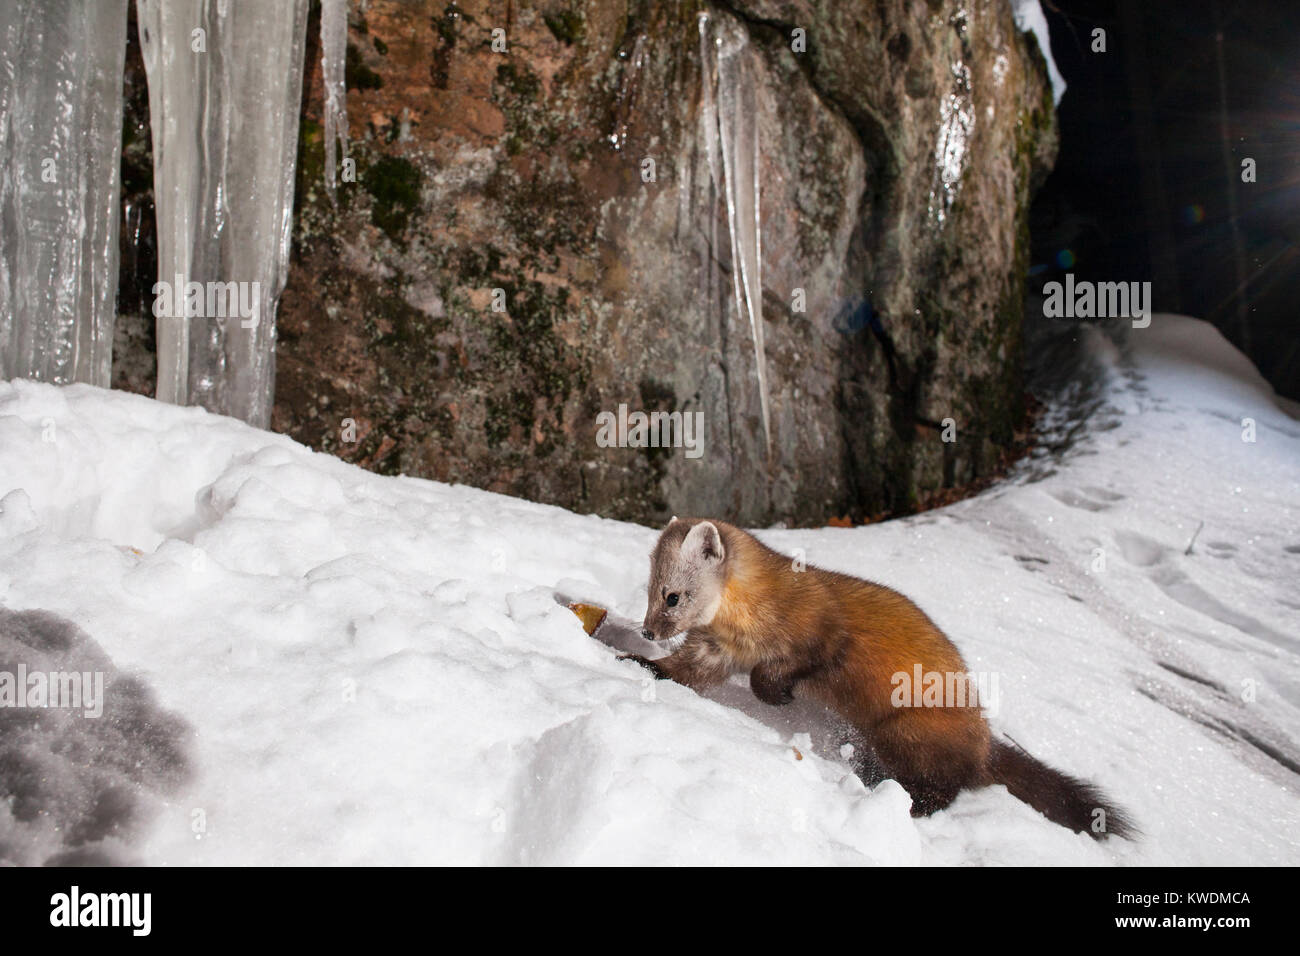 MAYNOOTH, ONTARIO, CANADA - December 20, 2017: A marten (Martes americana), part of the Weasel family / Mustelidae - Stock Image